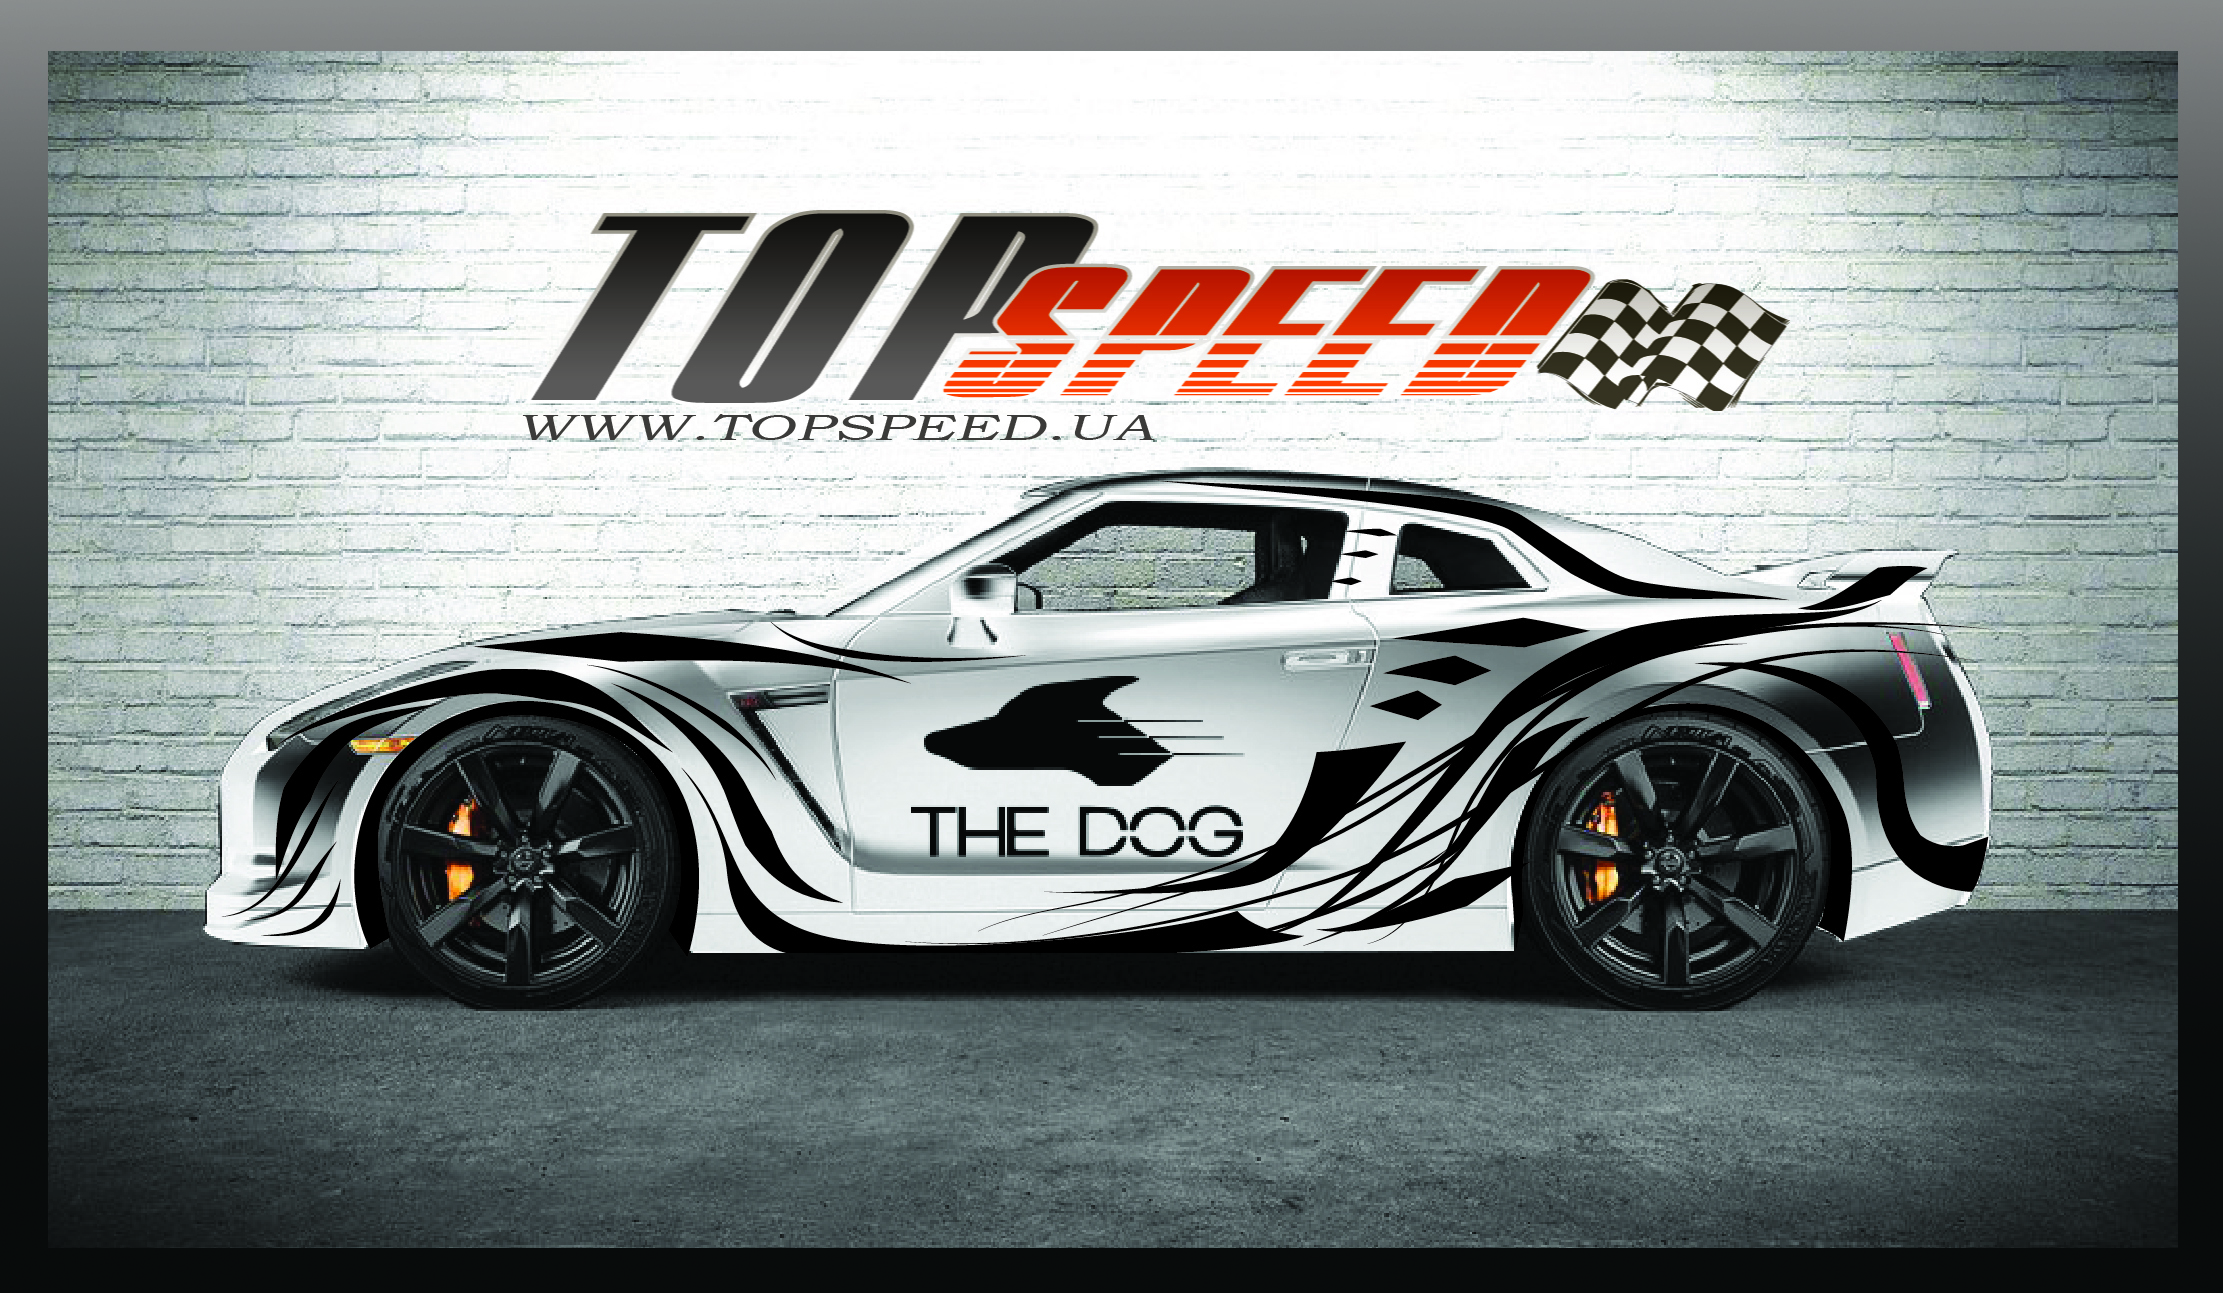 Top Speed GTR The Dog